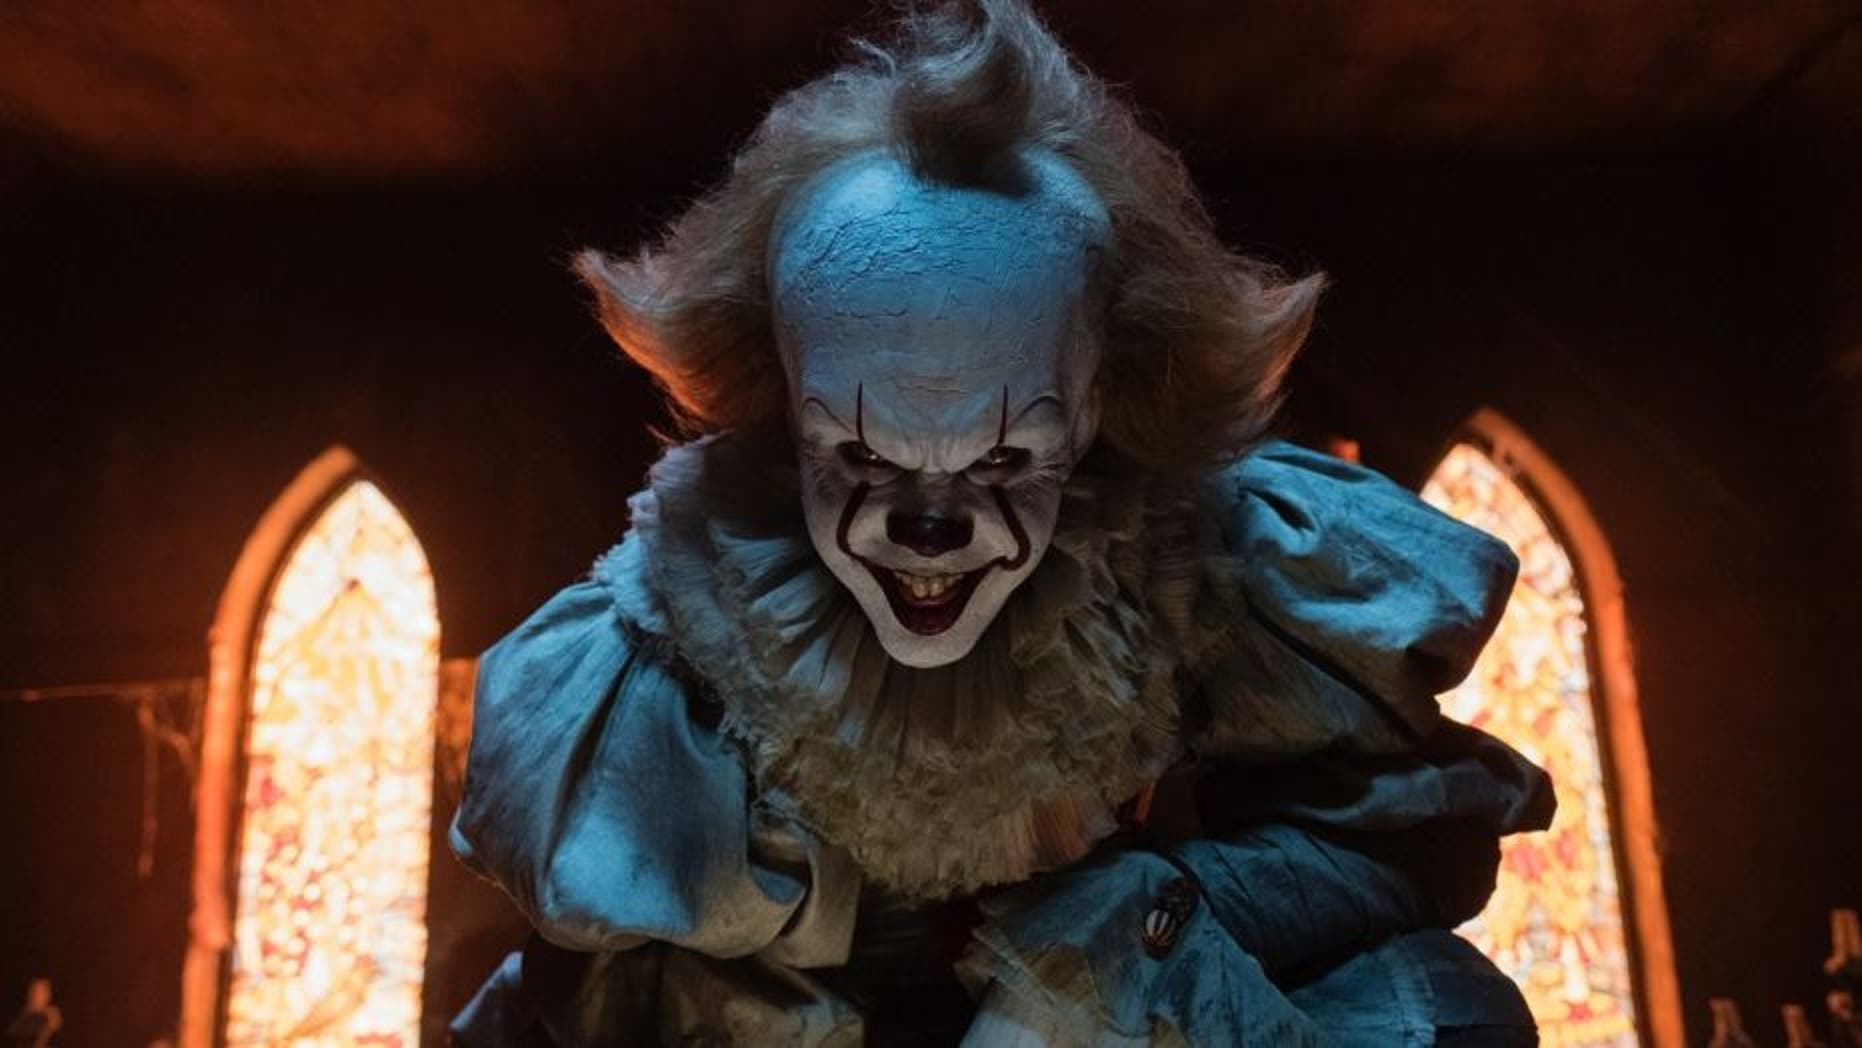 """Bill Skarsgard stars as Pennywise the clown in """"It,"""" a new horror film based on a Stephen King novel."""